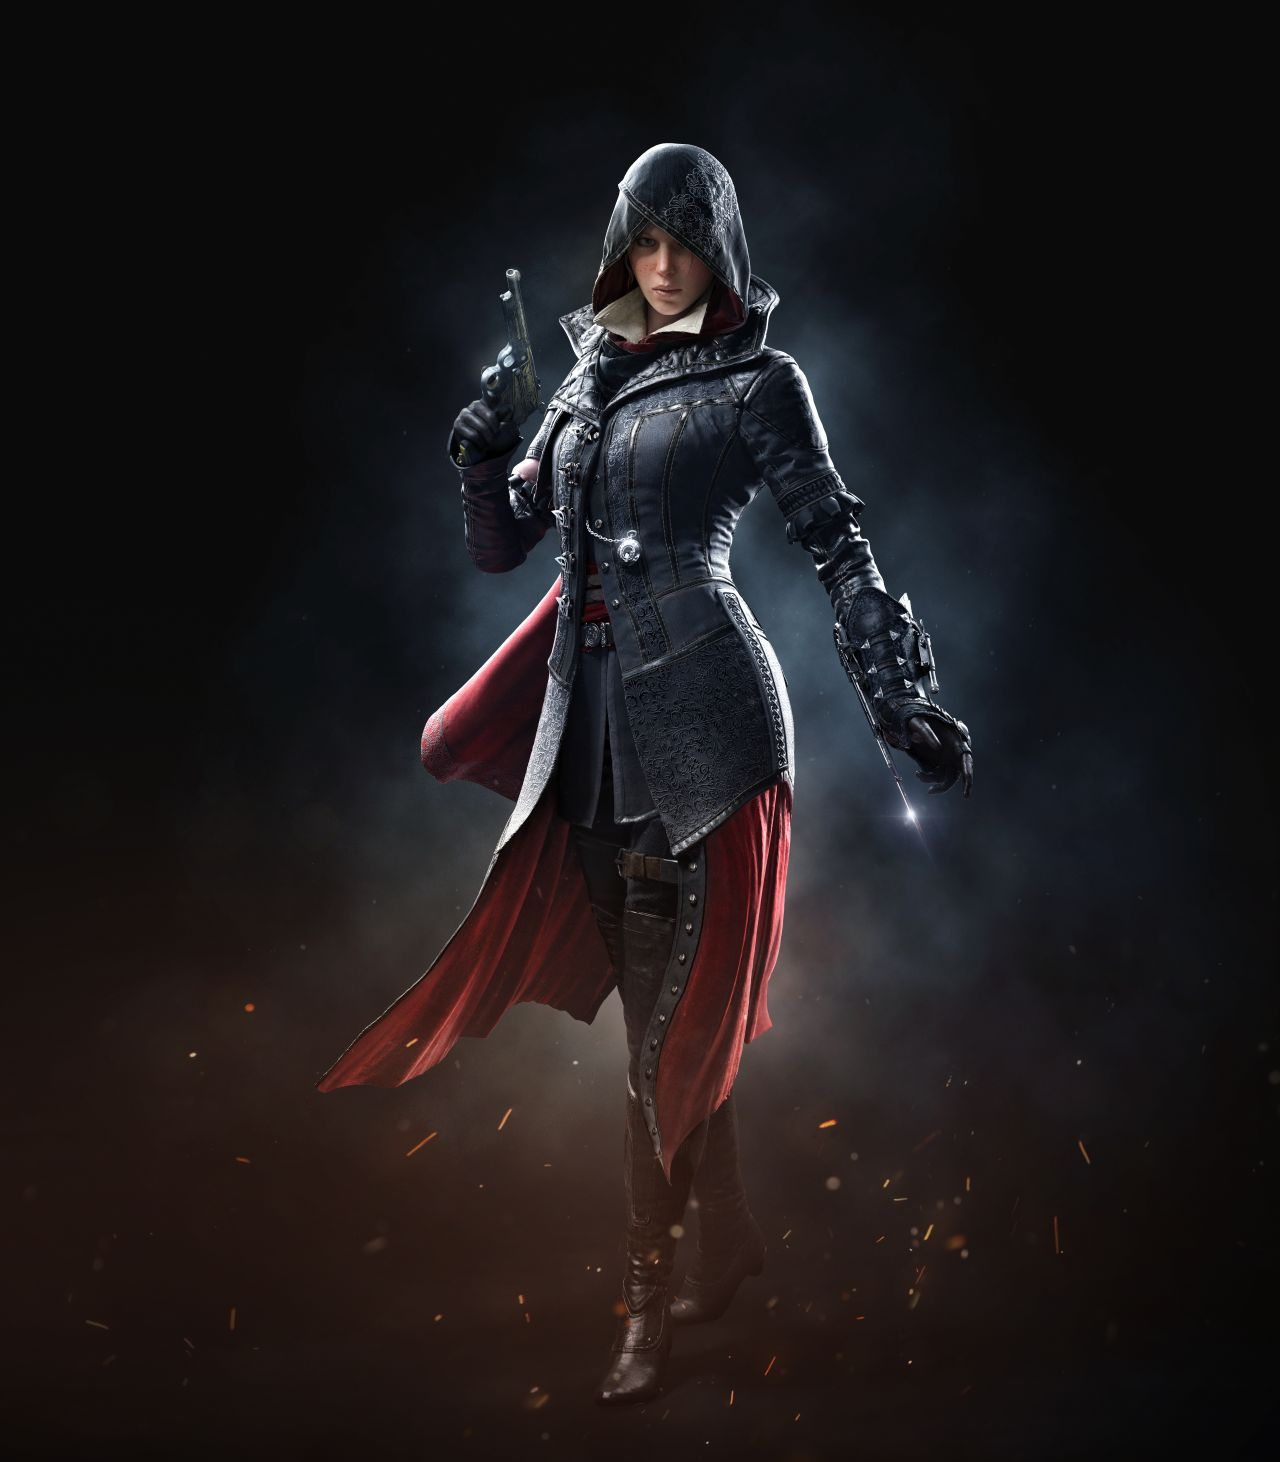 Assassin's Creed: Syndicate gamescom trailer focuses on ...